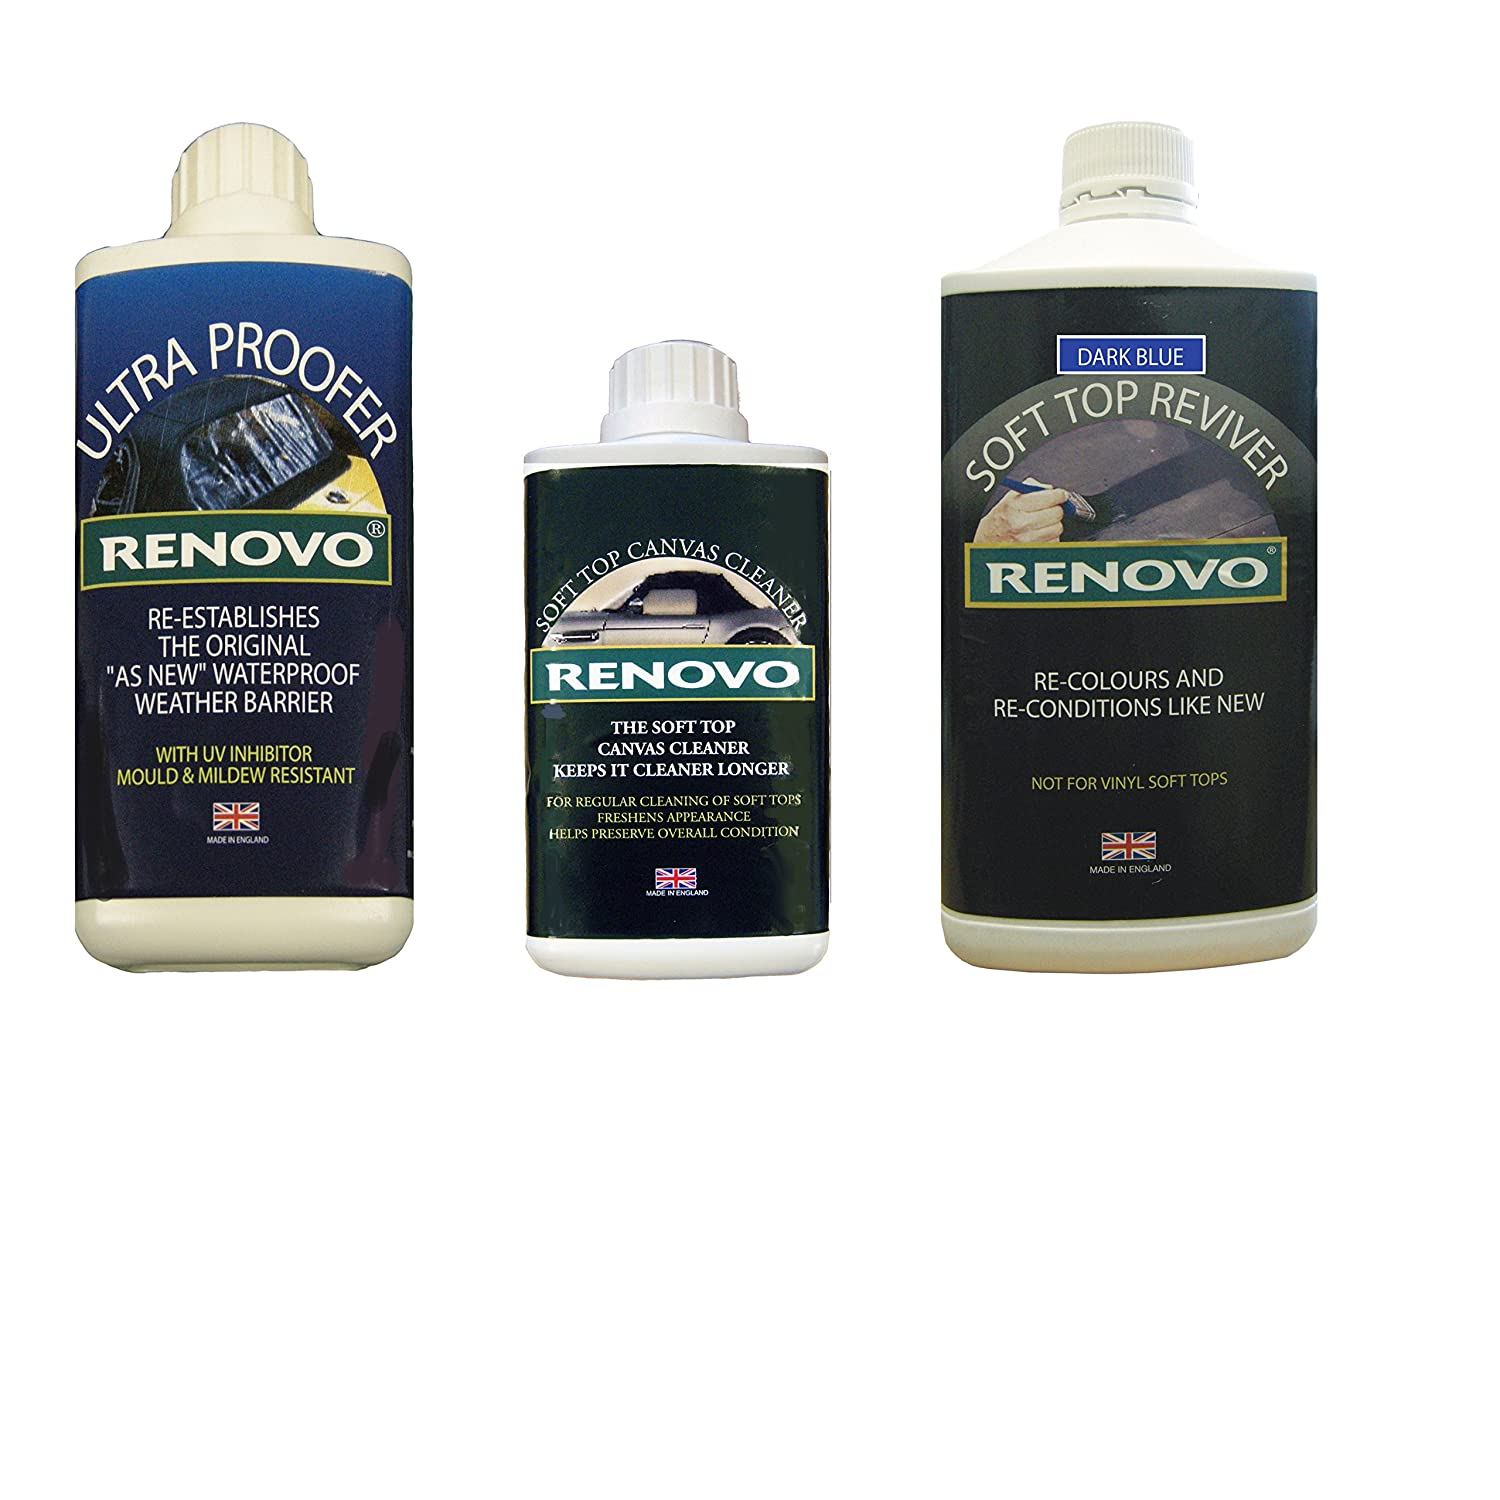 Renovo REN-KIT3 Triple Cleaning Kit includes Soft Top Reviver/Soft Top Ultra Proofer/Soft Top Canvas Cleaner, Blue Renovo International